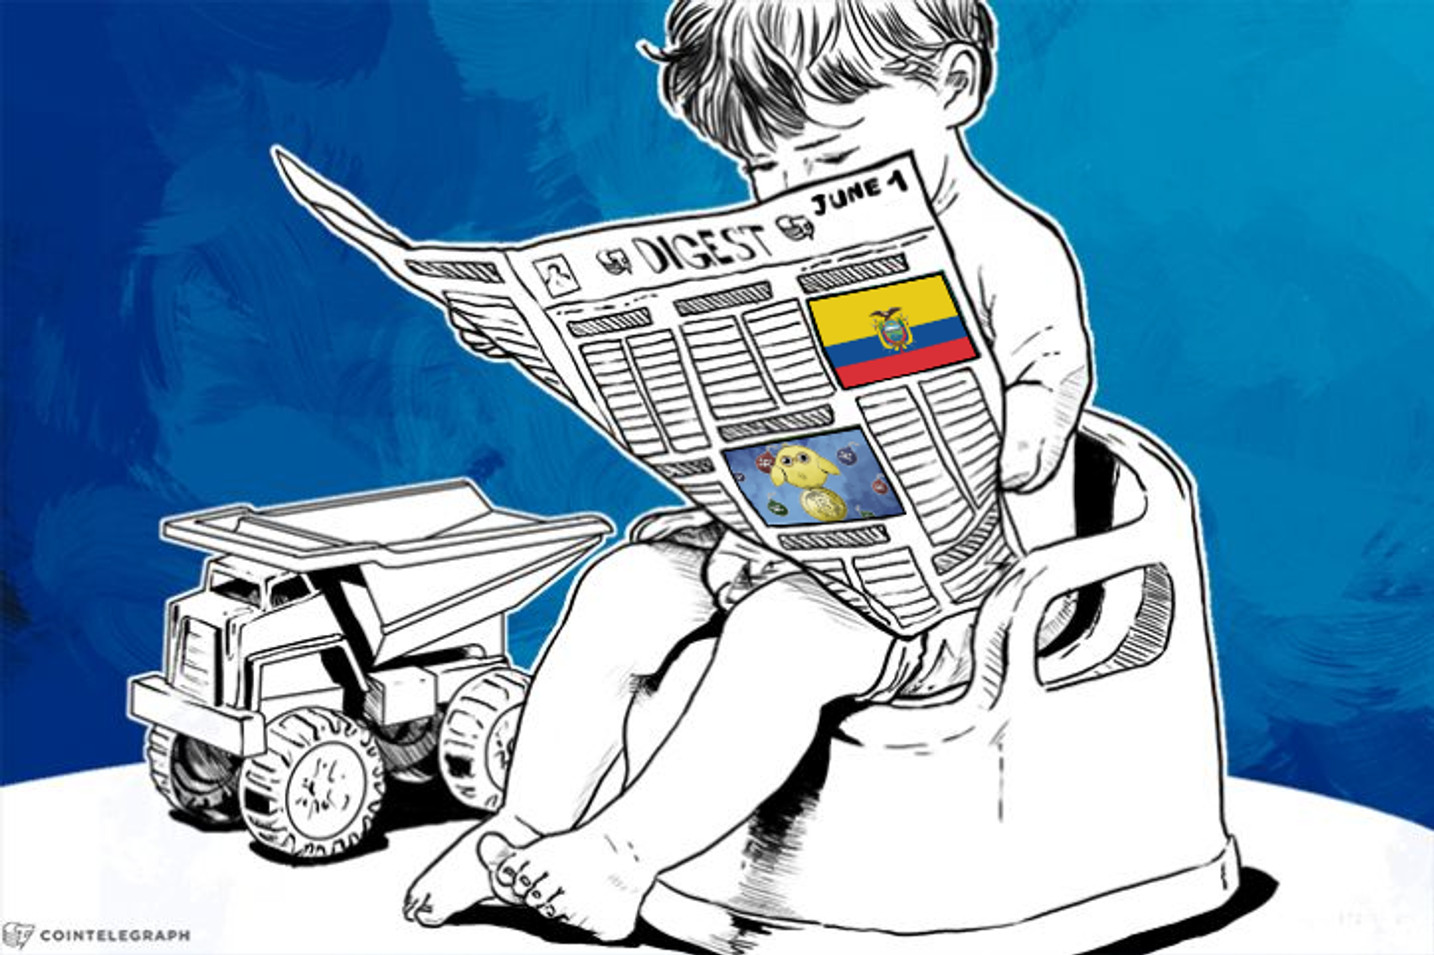 JUN 1 DIGEST: Ecuador Orders Banks to Adopt State Digital Currency, Playboy Writes About Bitcoin